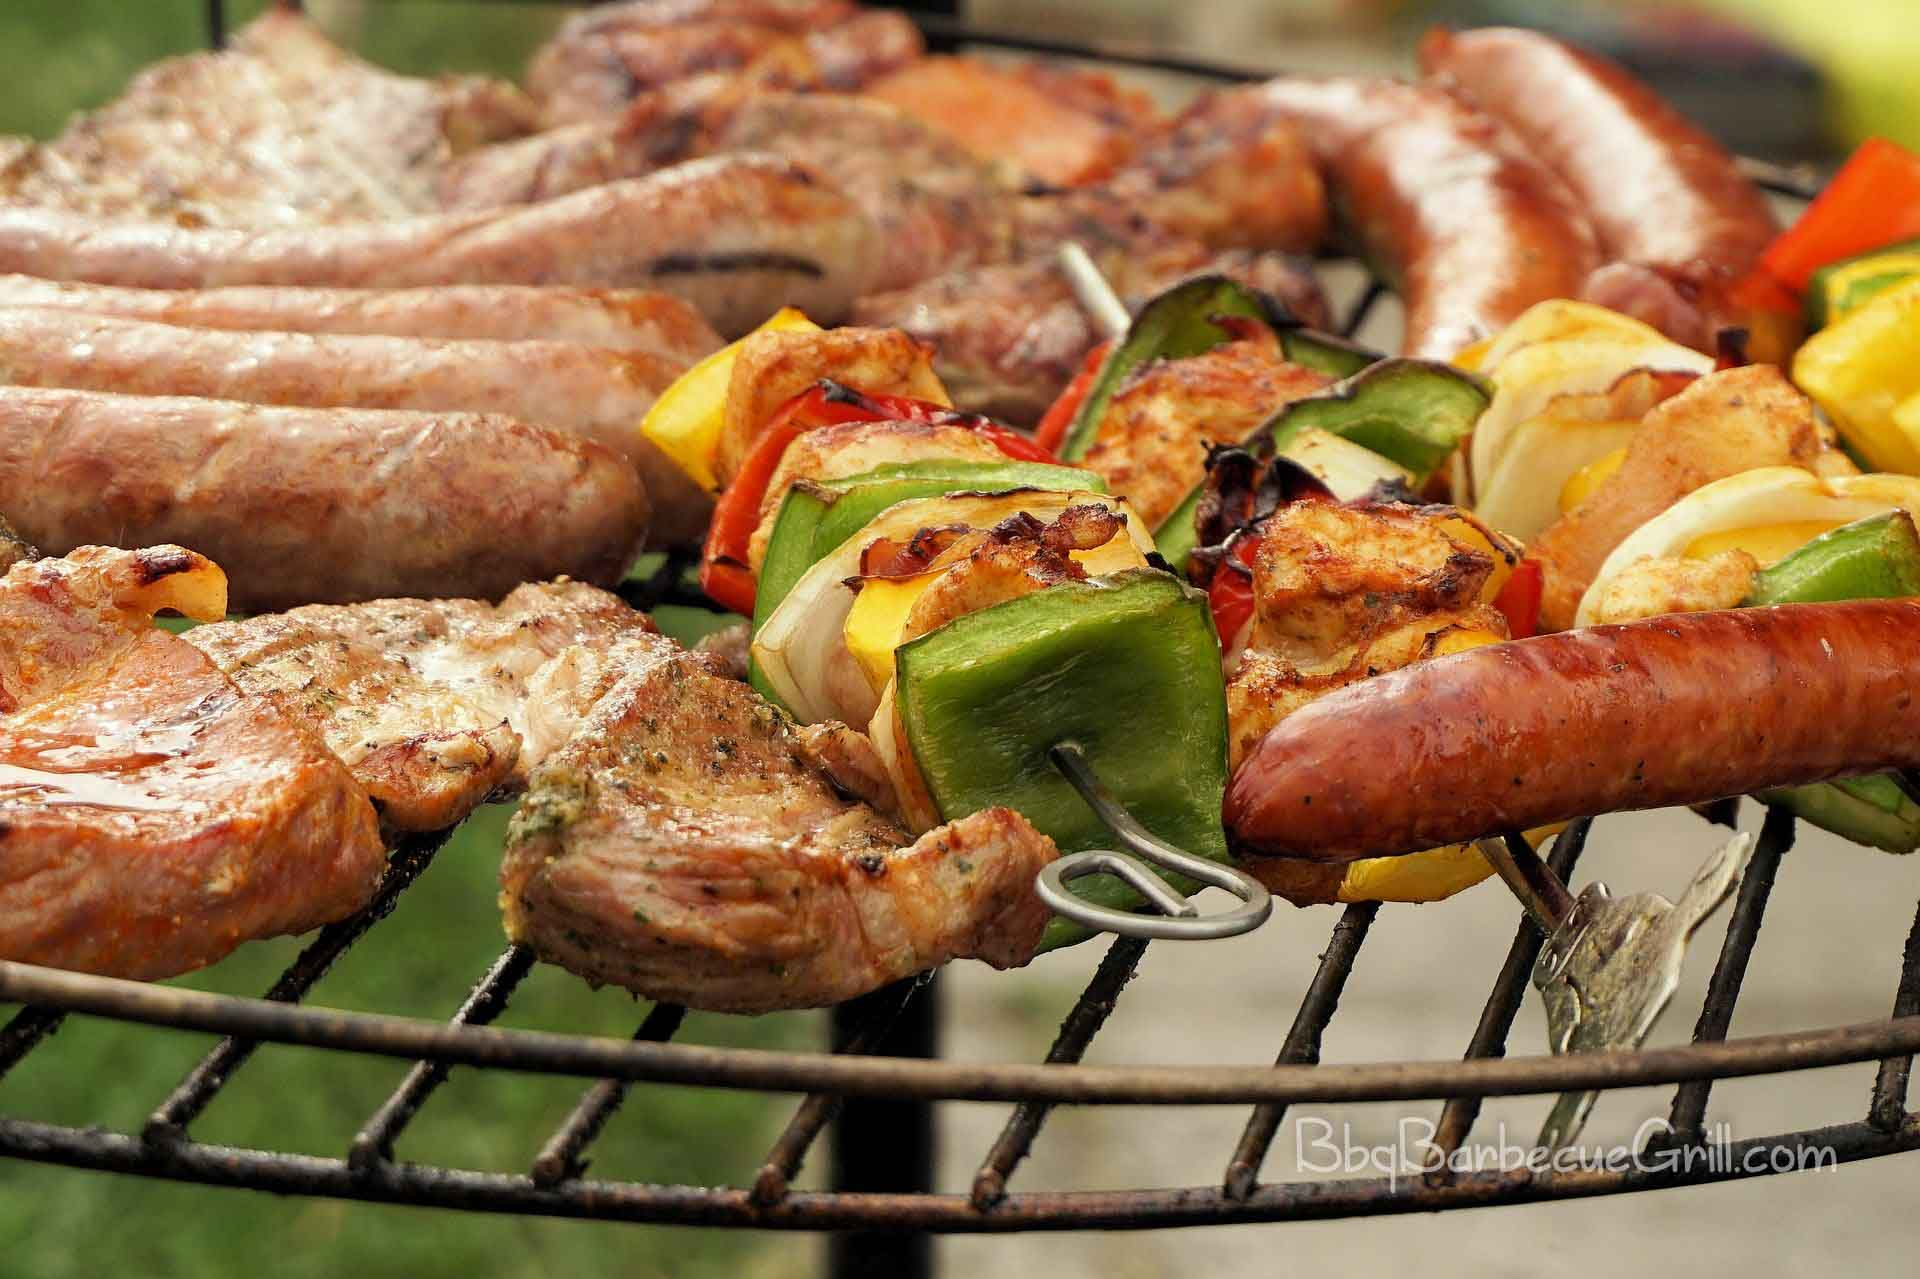 Health benefits of grilling food 1